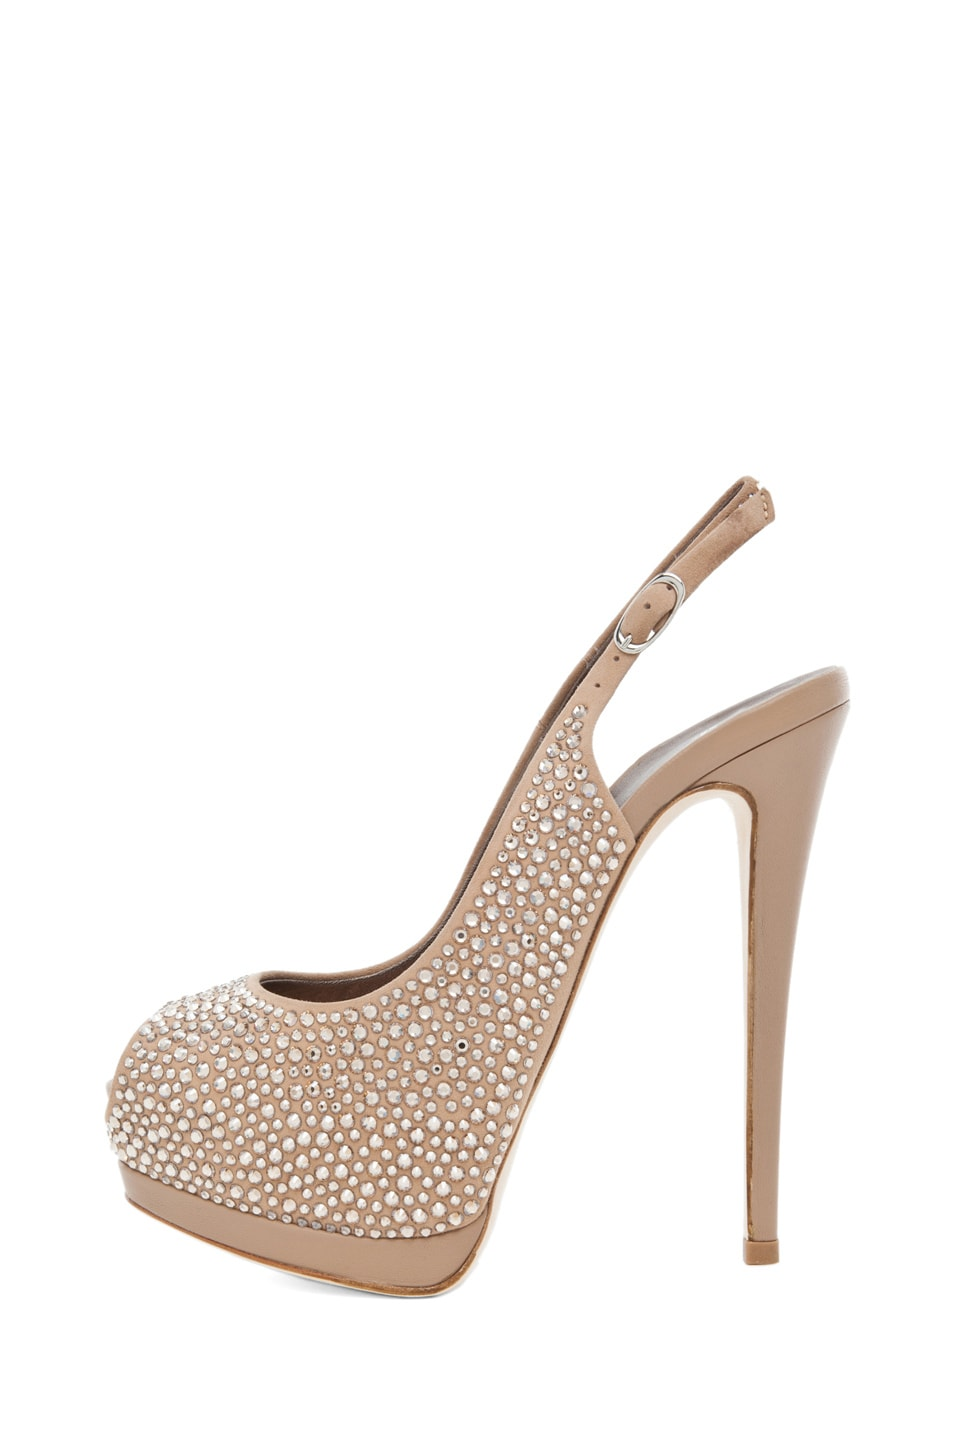 Image 1 of Giuseppe Zanotti Embellished Sling Back Pump in Nude